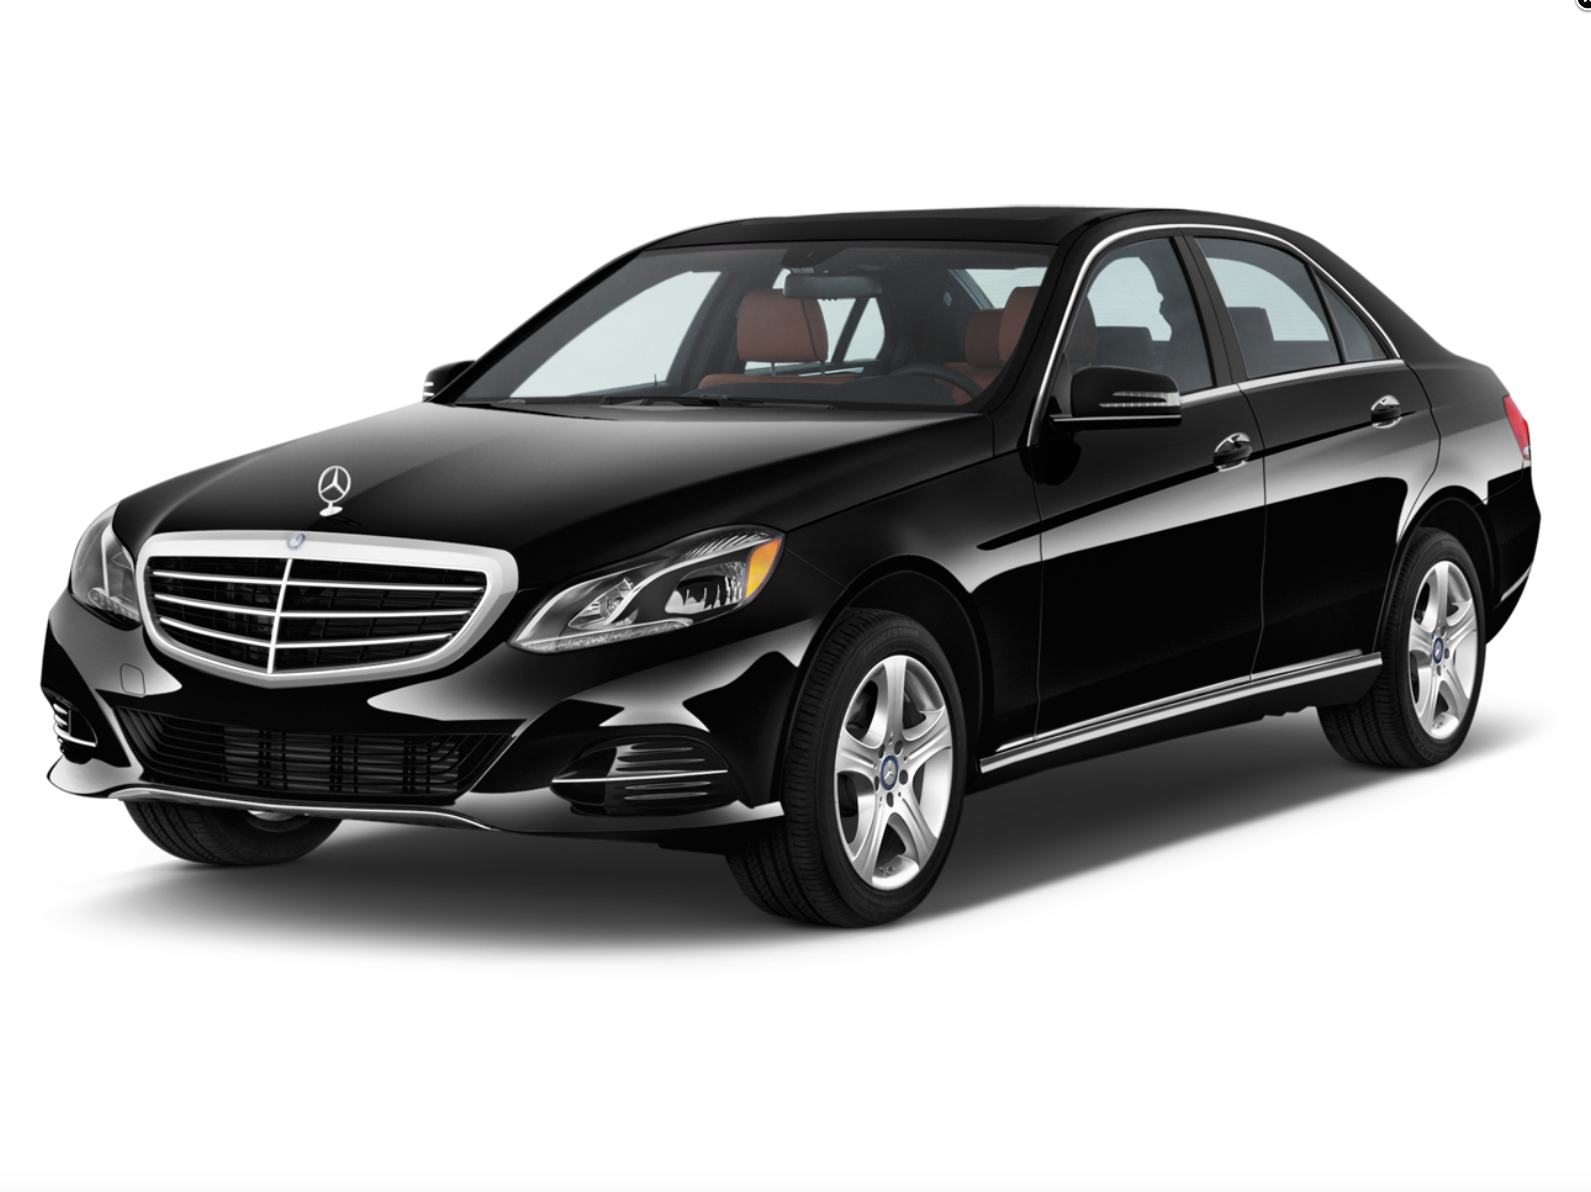 2016 mercedes benz e class review mbca for 2016 mercedes benz e350 review